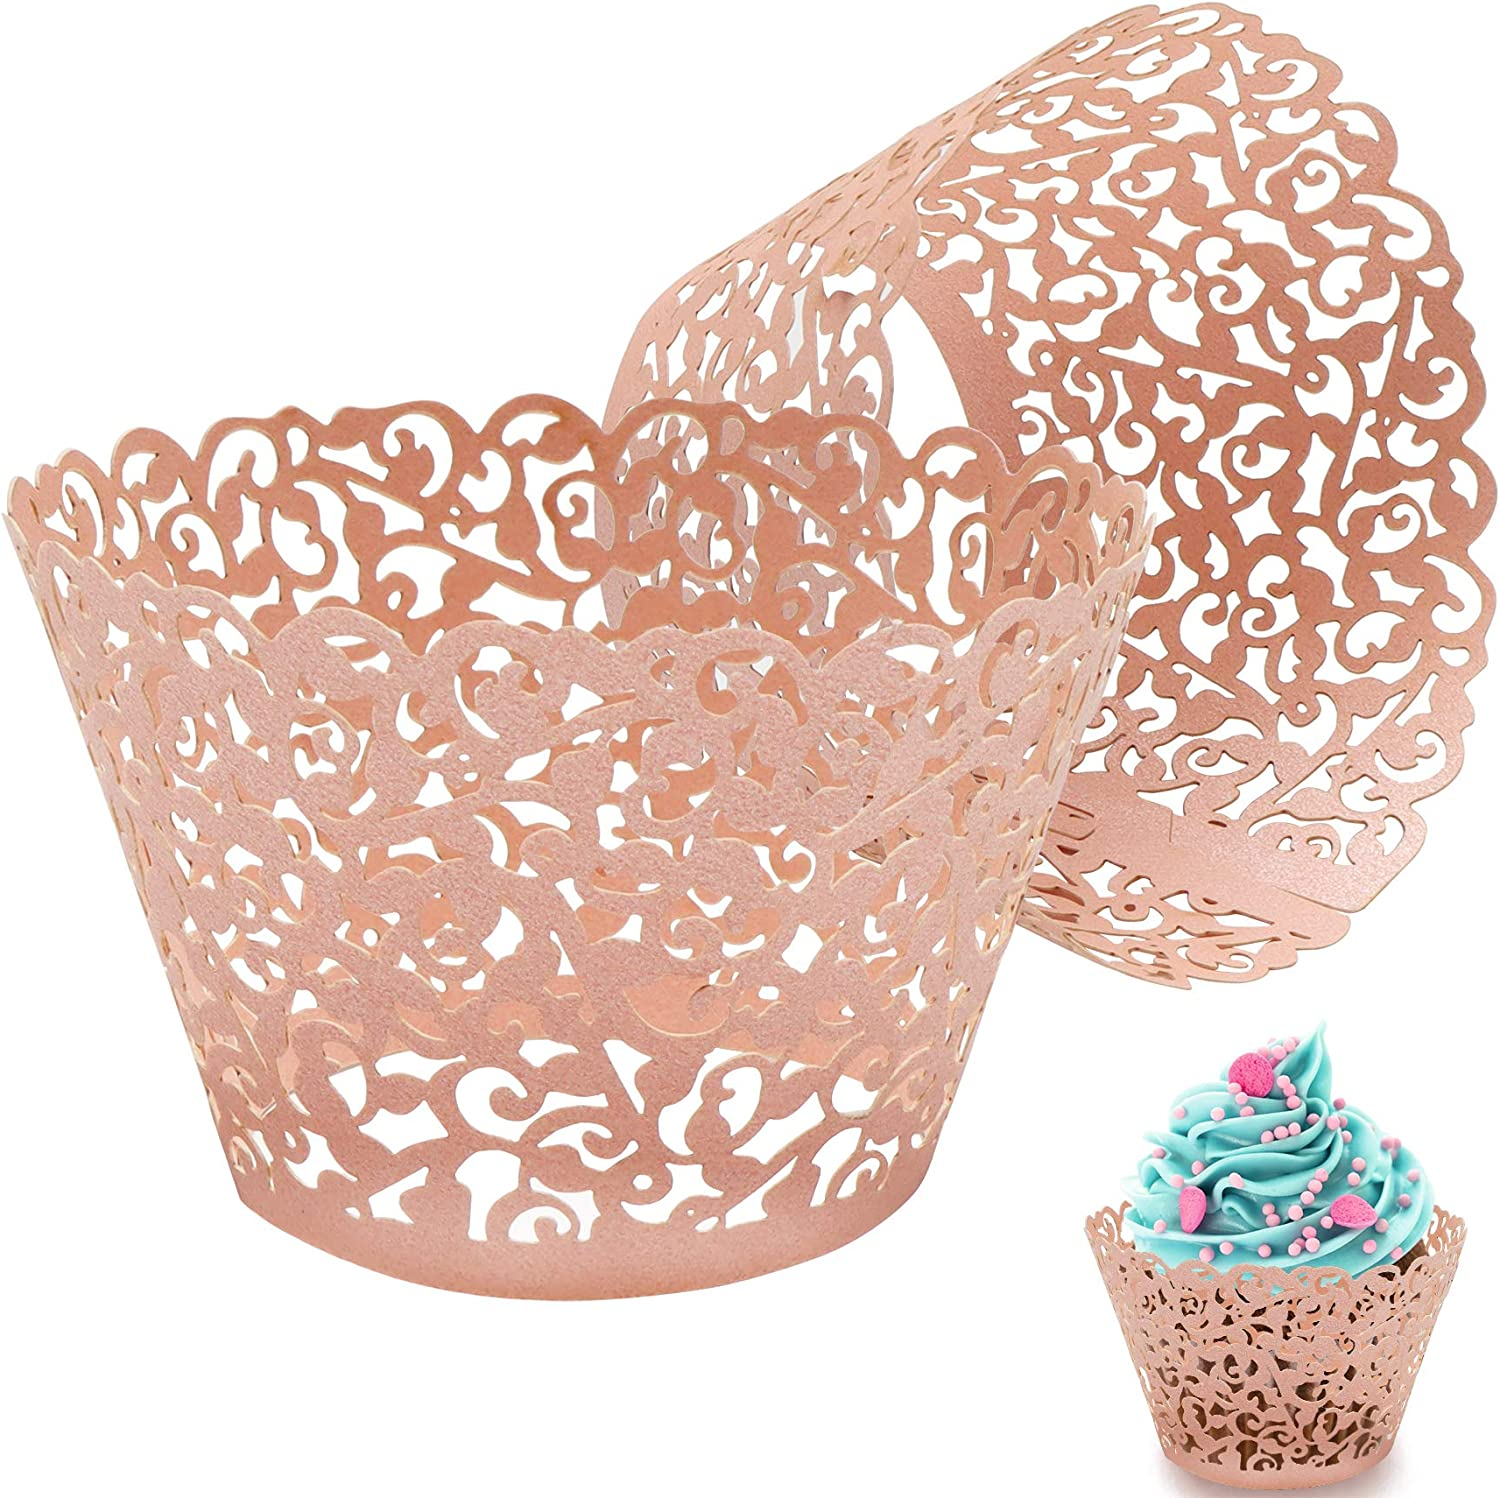 100Pcs Cupcake Wrappers Artistic Bake Cake Paper Filigree Little Vine Lace Laser Cut Liner Baking Cup Wraps 20% OFF £3.99 @ Amazon